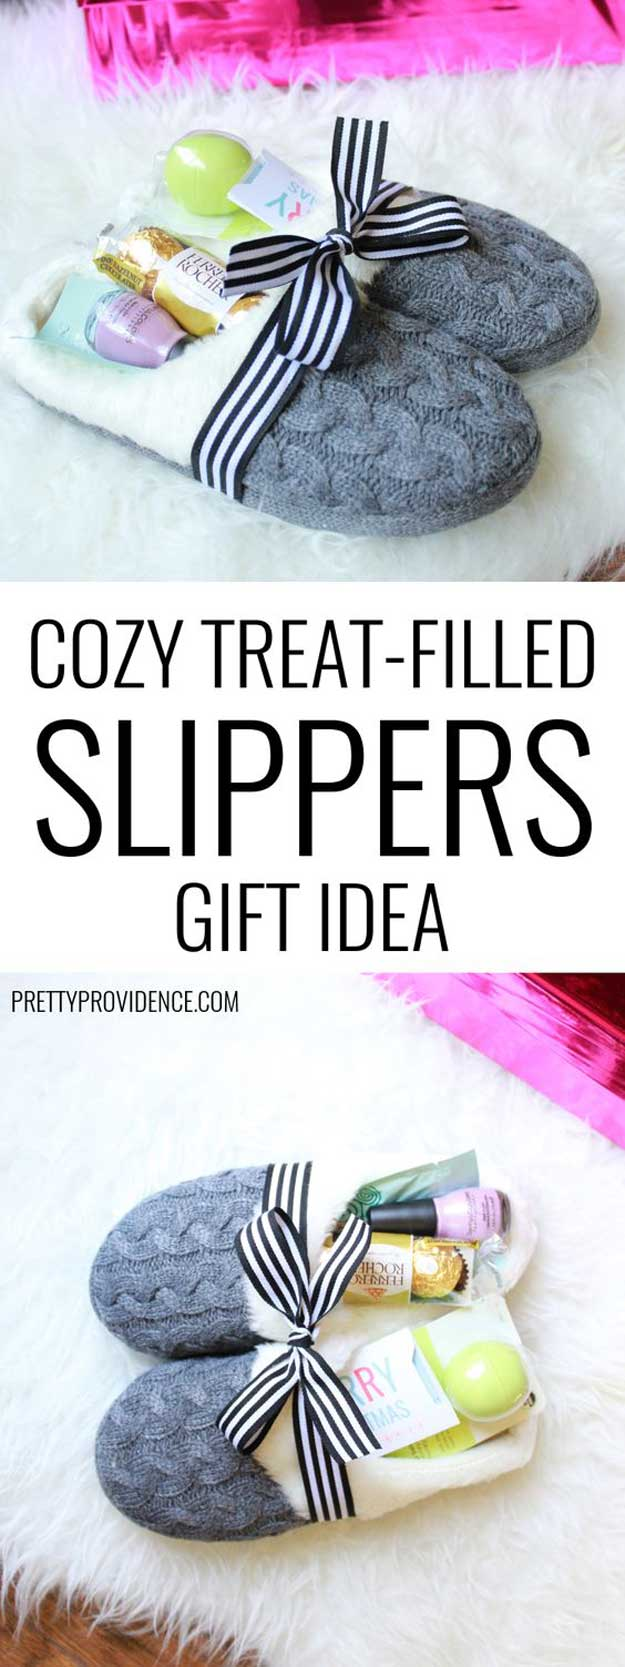 Cute gifts to make for her diy ready Perfect christmas gifts for mom